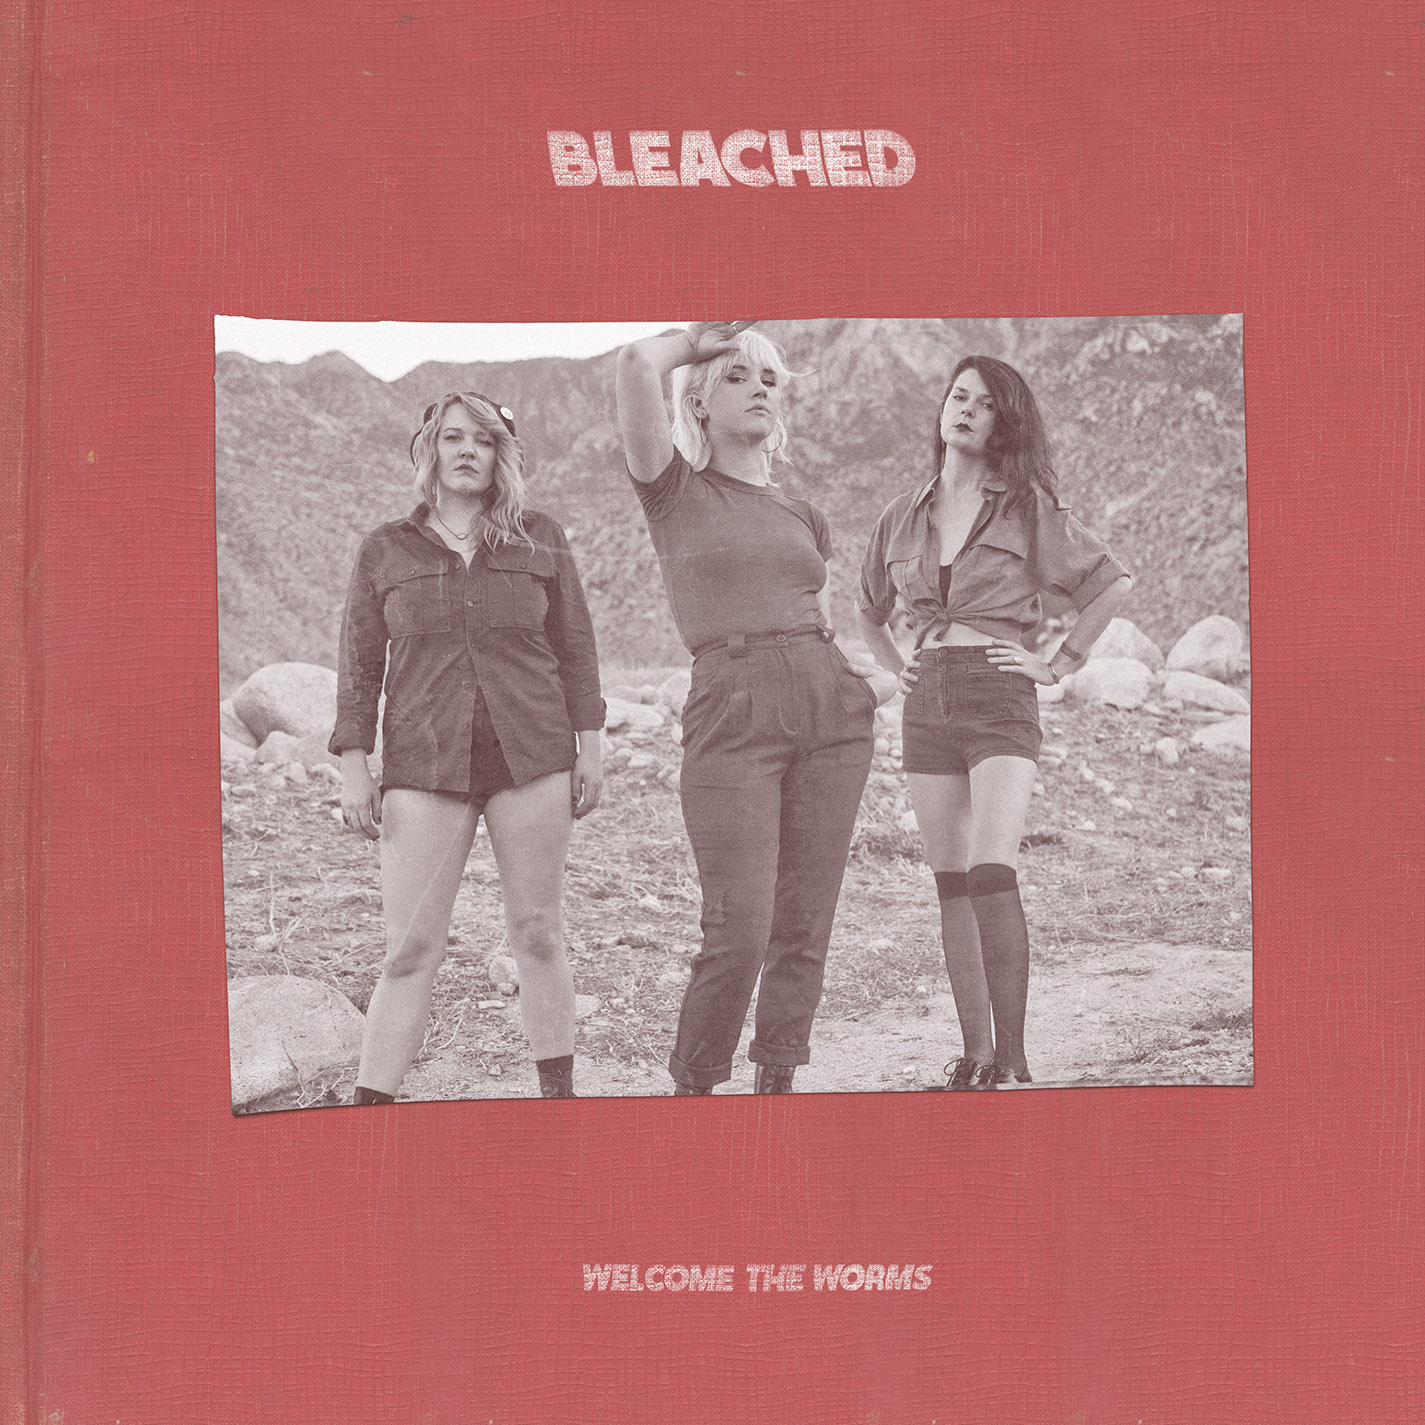 'Welcome The Worms' by Bleached, album review